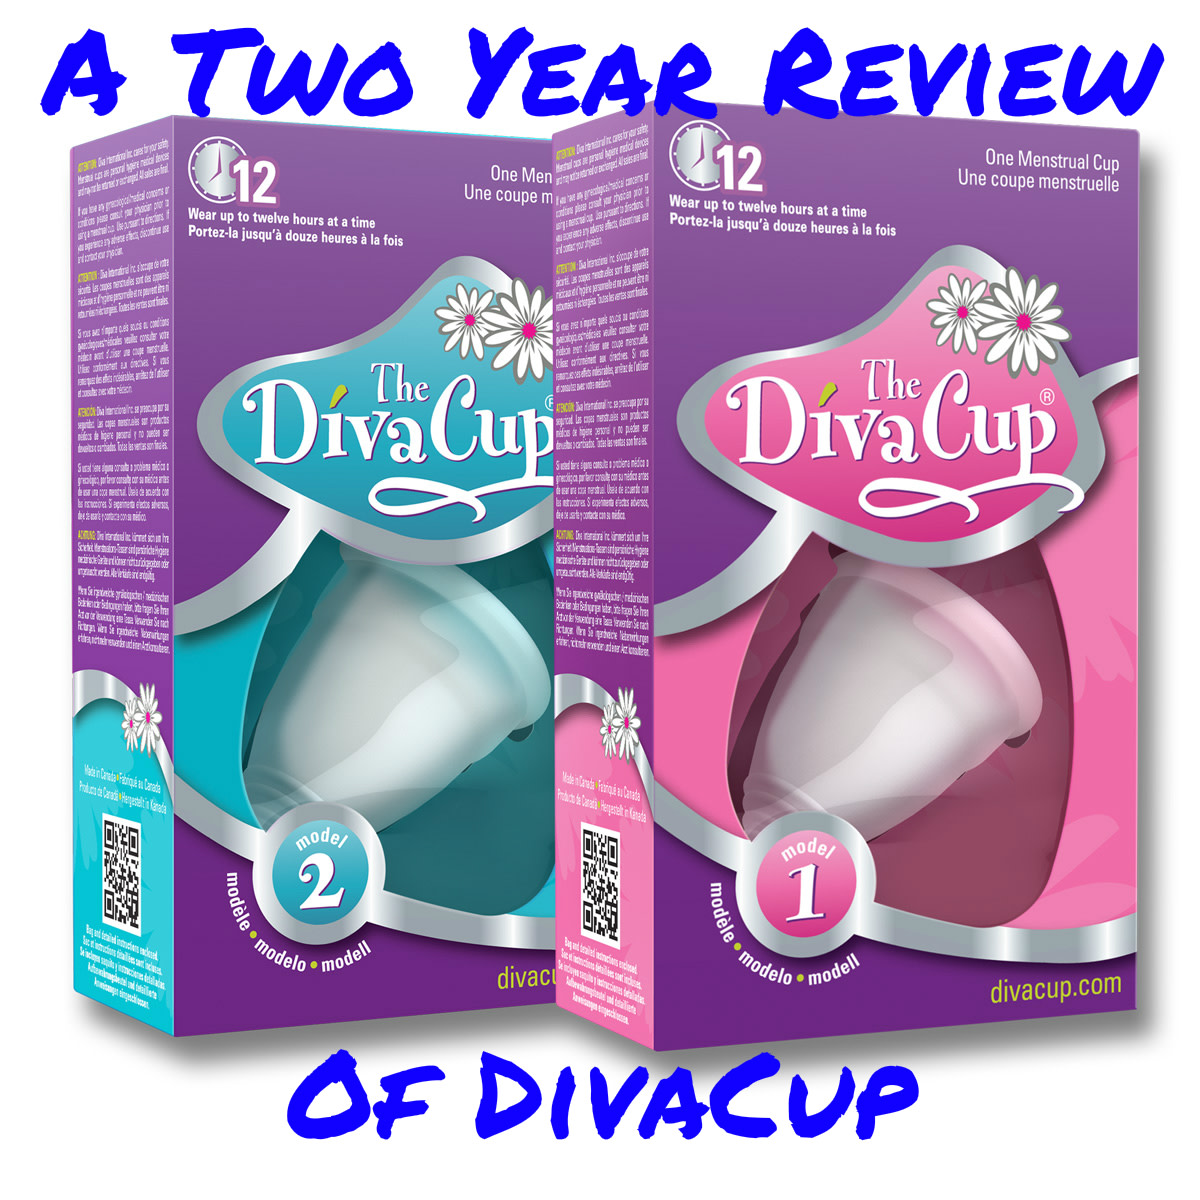 A Two-Year Review of DivaCup